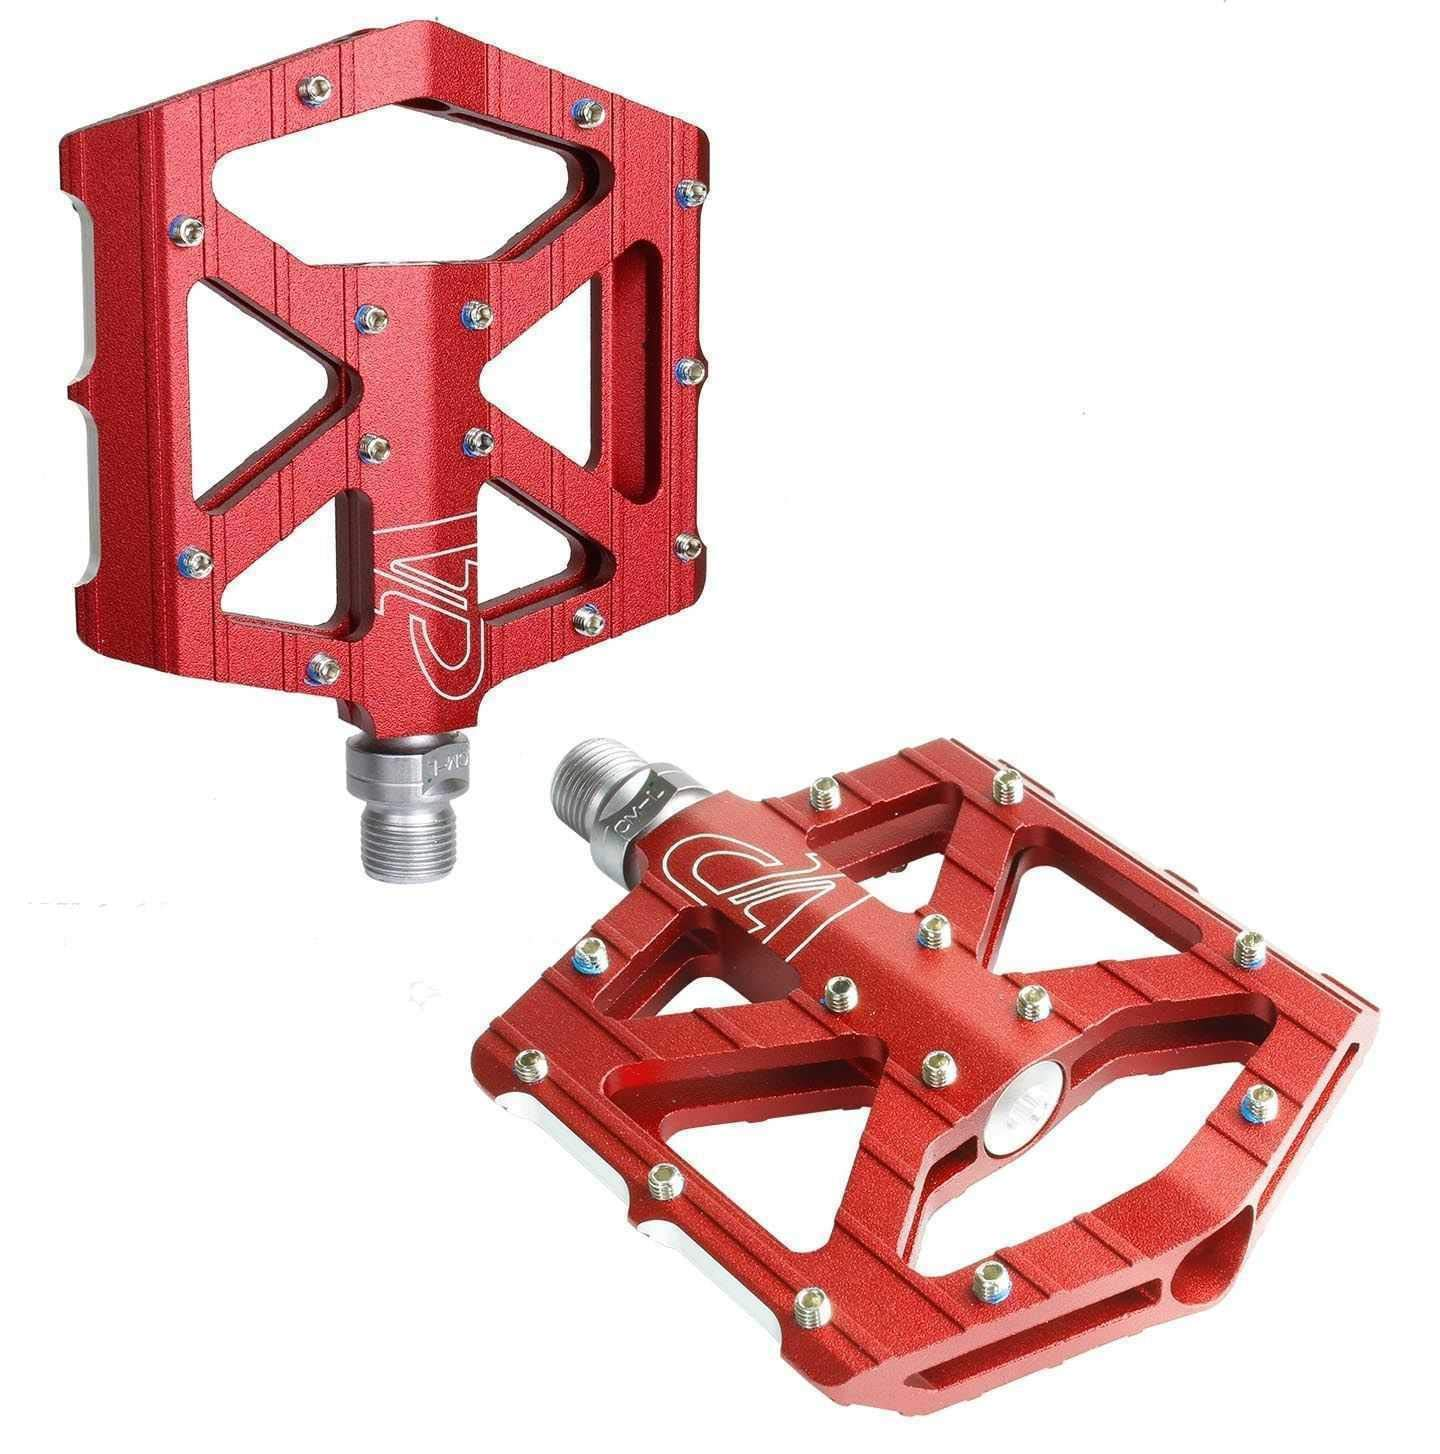 VP Components Bike Pedals, Red by VP Components